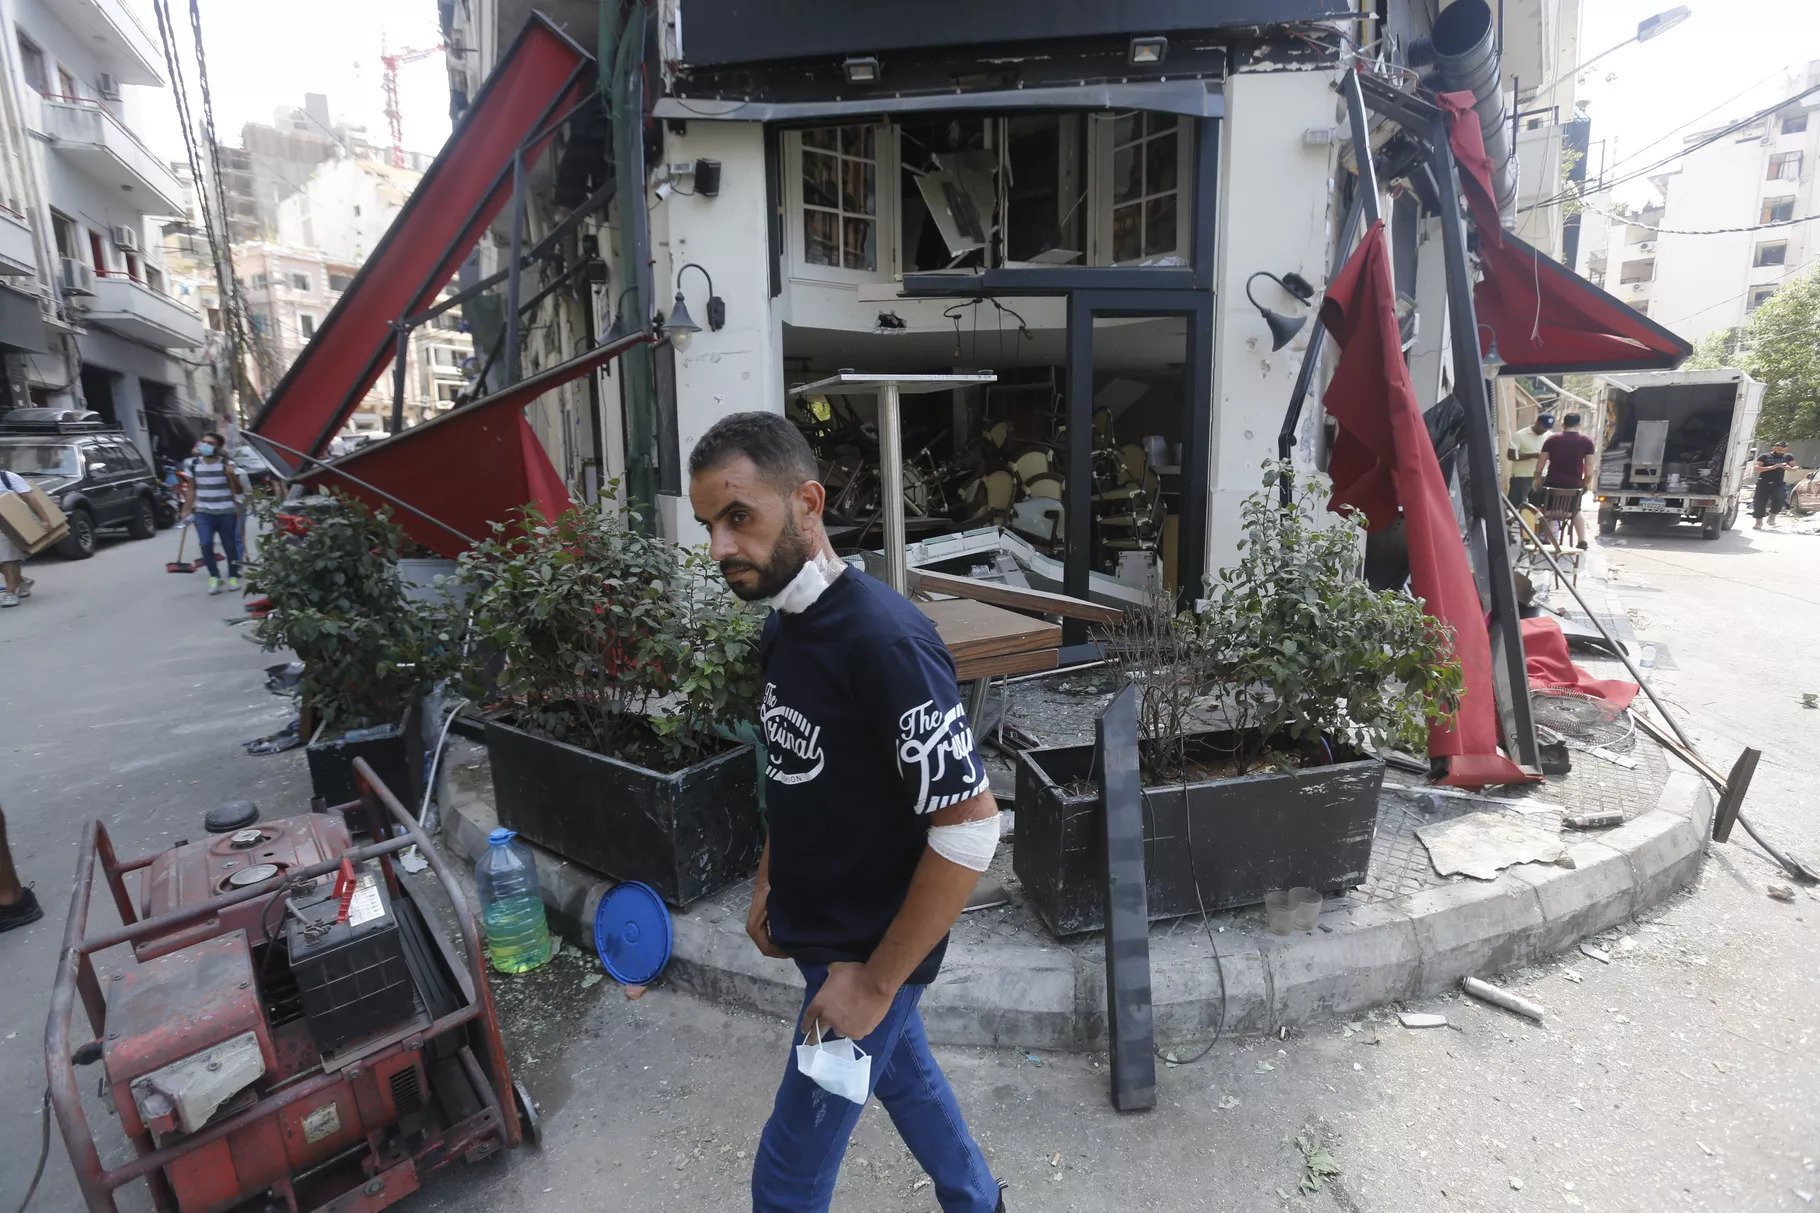 A man walks by a restaurant, heavily damaged by Tuesday's explosion, on August 6, 2020, in Beirut, Lebanon. Marwan Tahtah/Getty Images